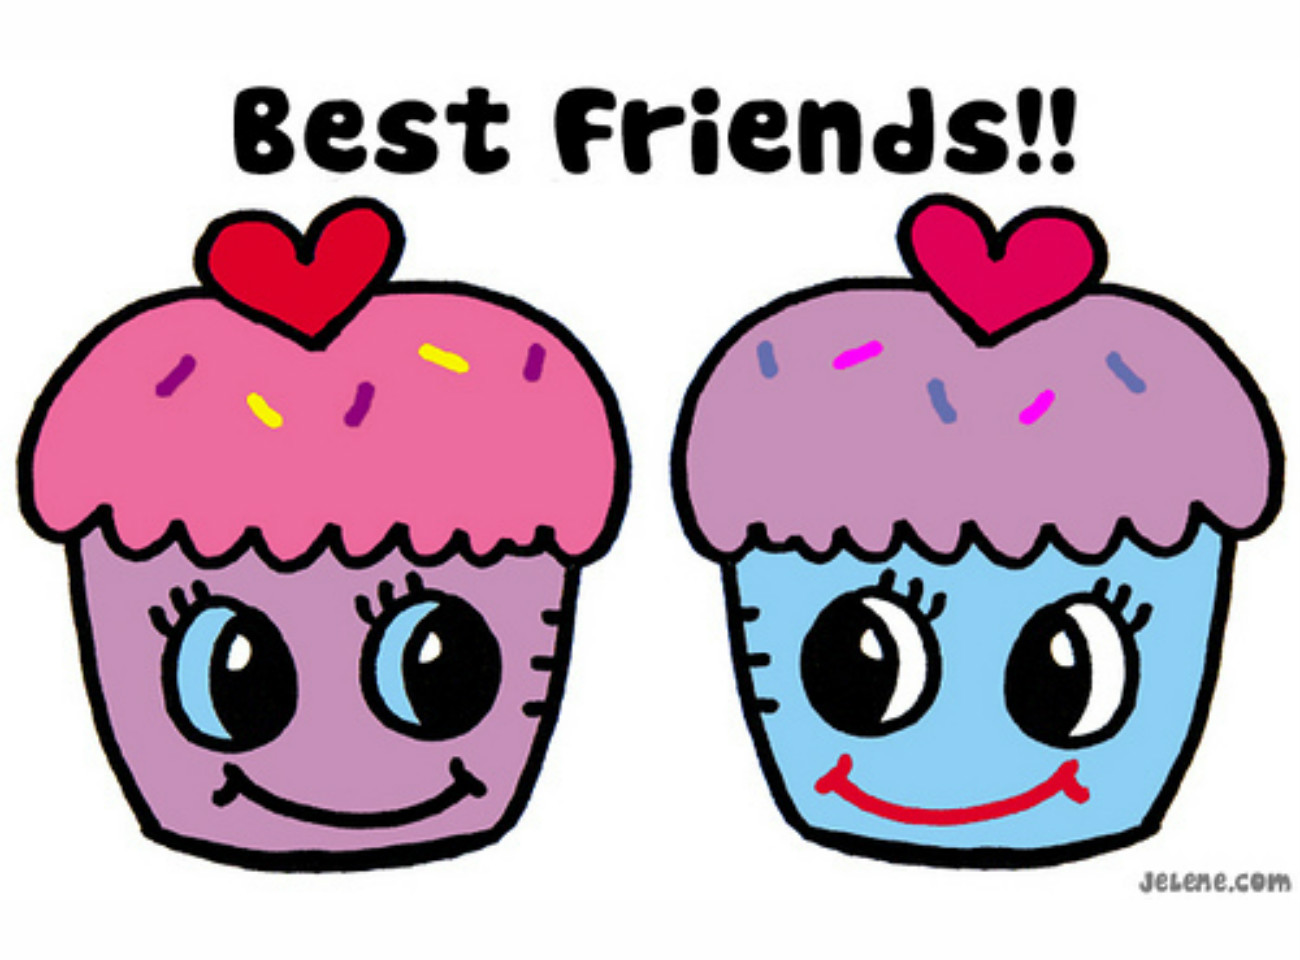 Best Friends Cup Cakes Wallpaper